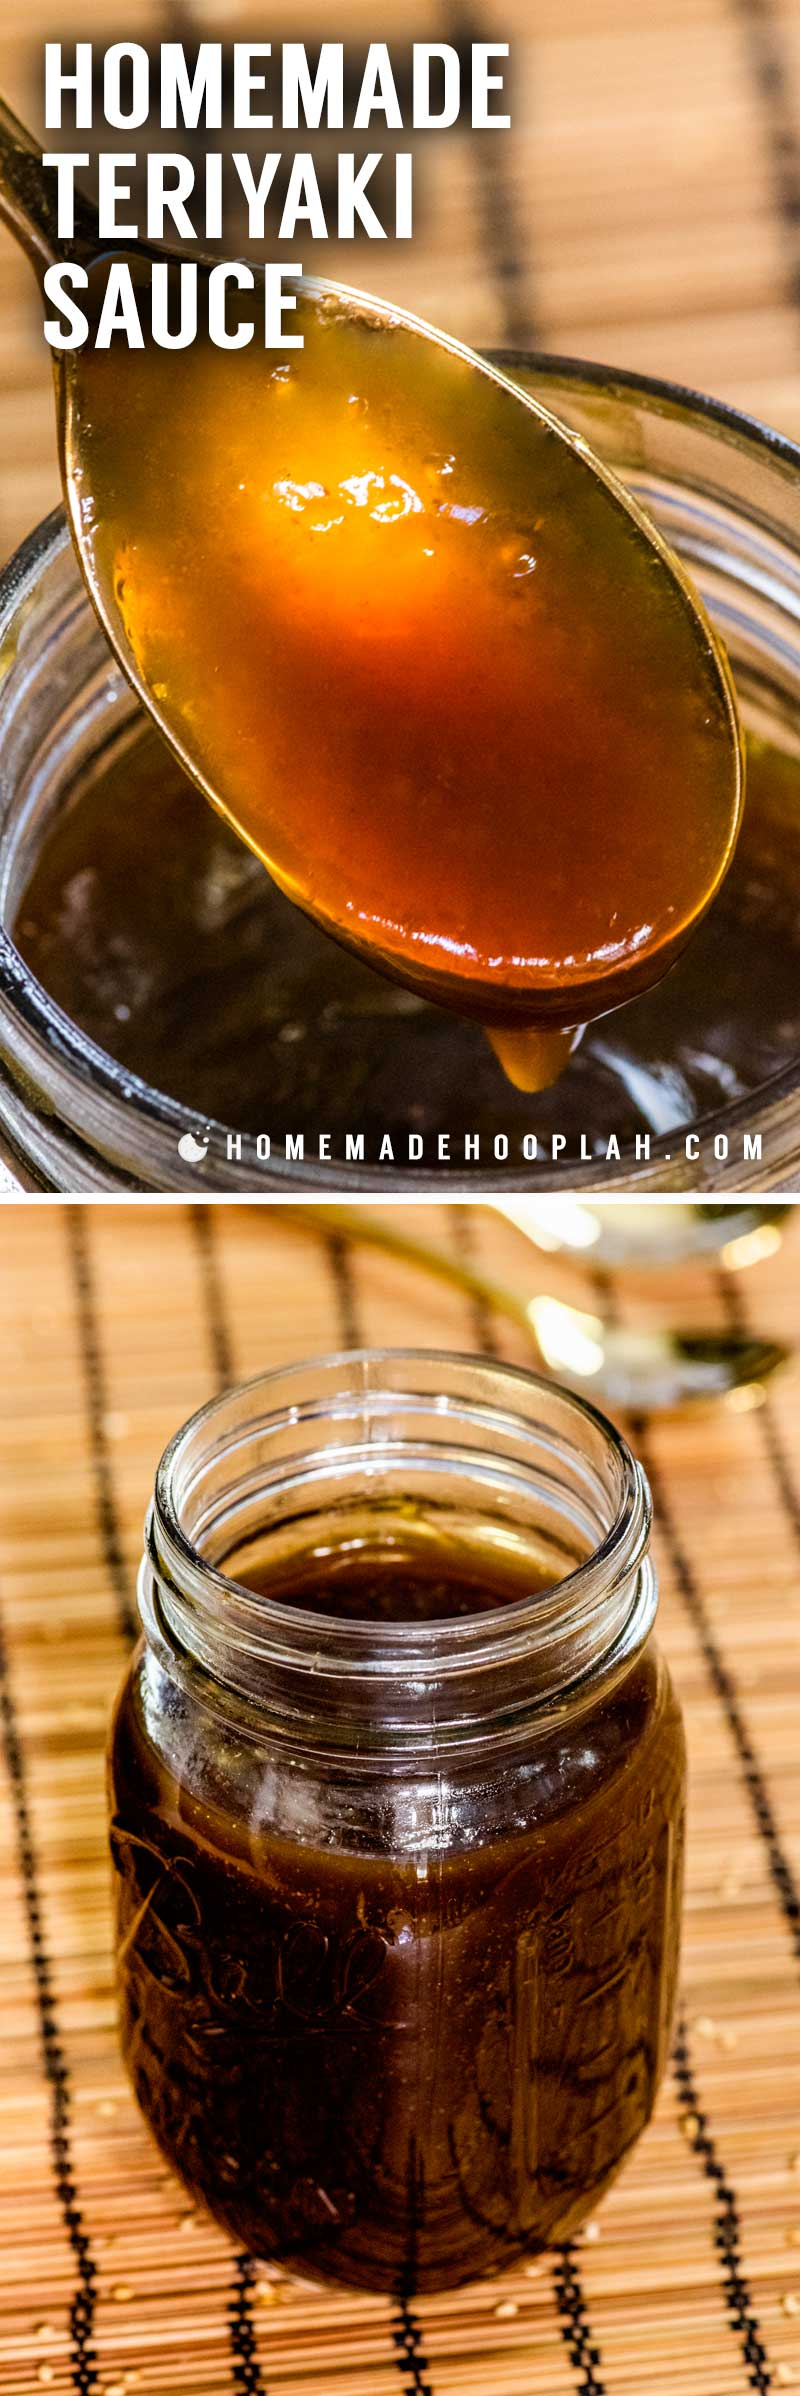 Homemade Teriyaki Sauce! Whether you love Asian-style dishes or just need a tasty sauce for dipping, this homemade teriyaki sauce is fast to make and easy to adjust to your tastes.   HomemadeHooplah.com